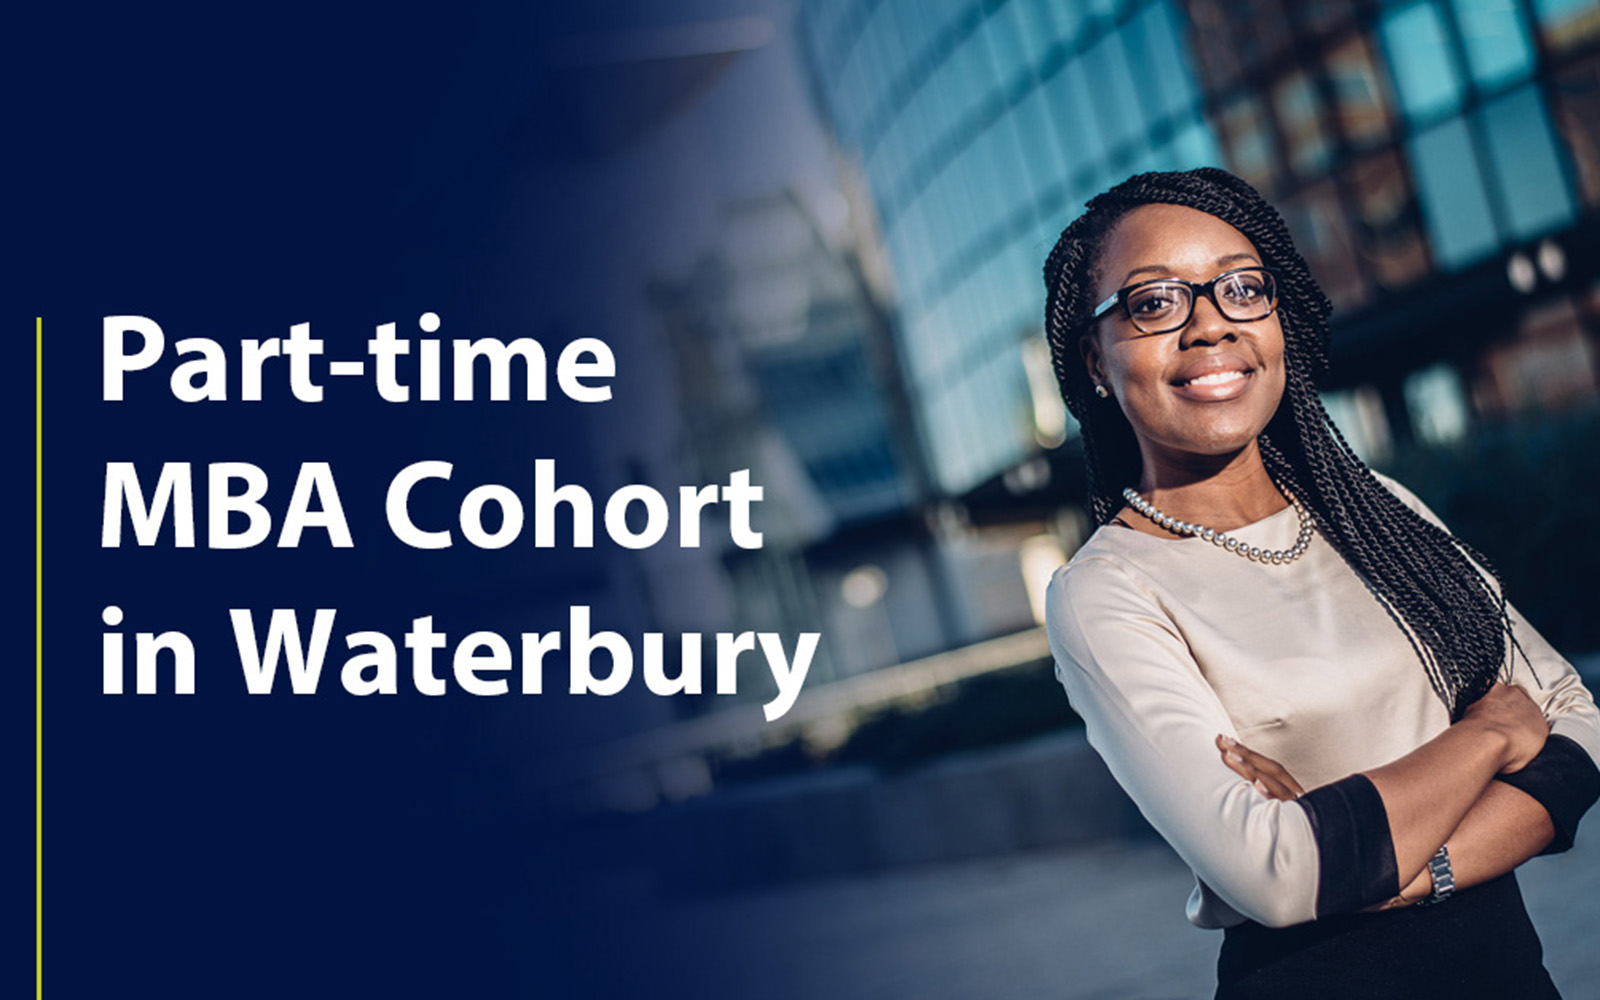 New Part-time MBA Cohort in Waterbury